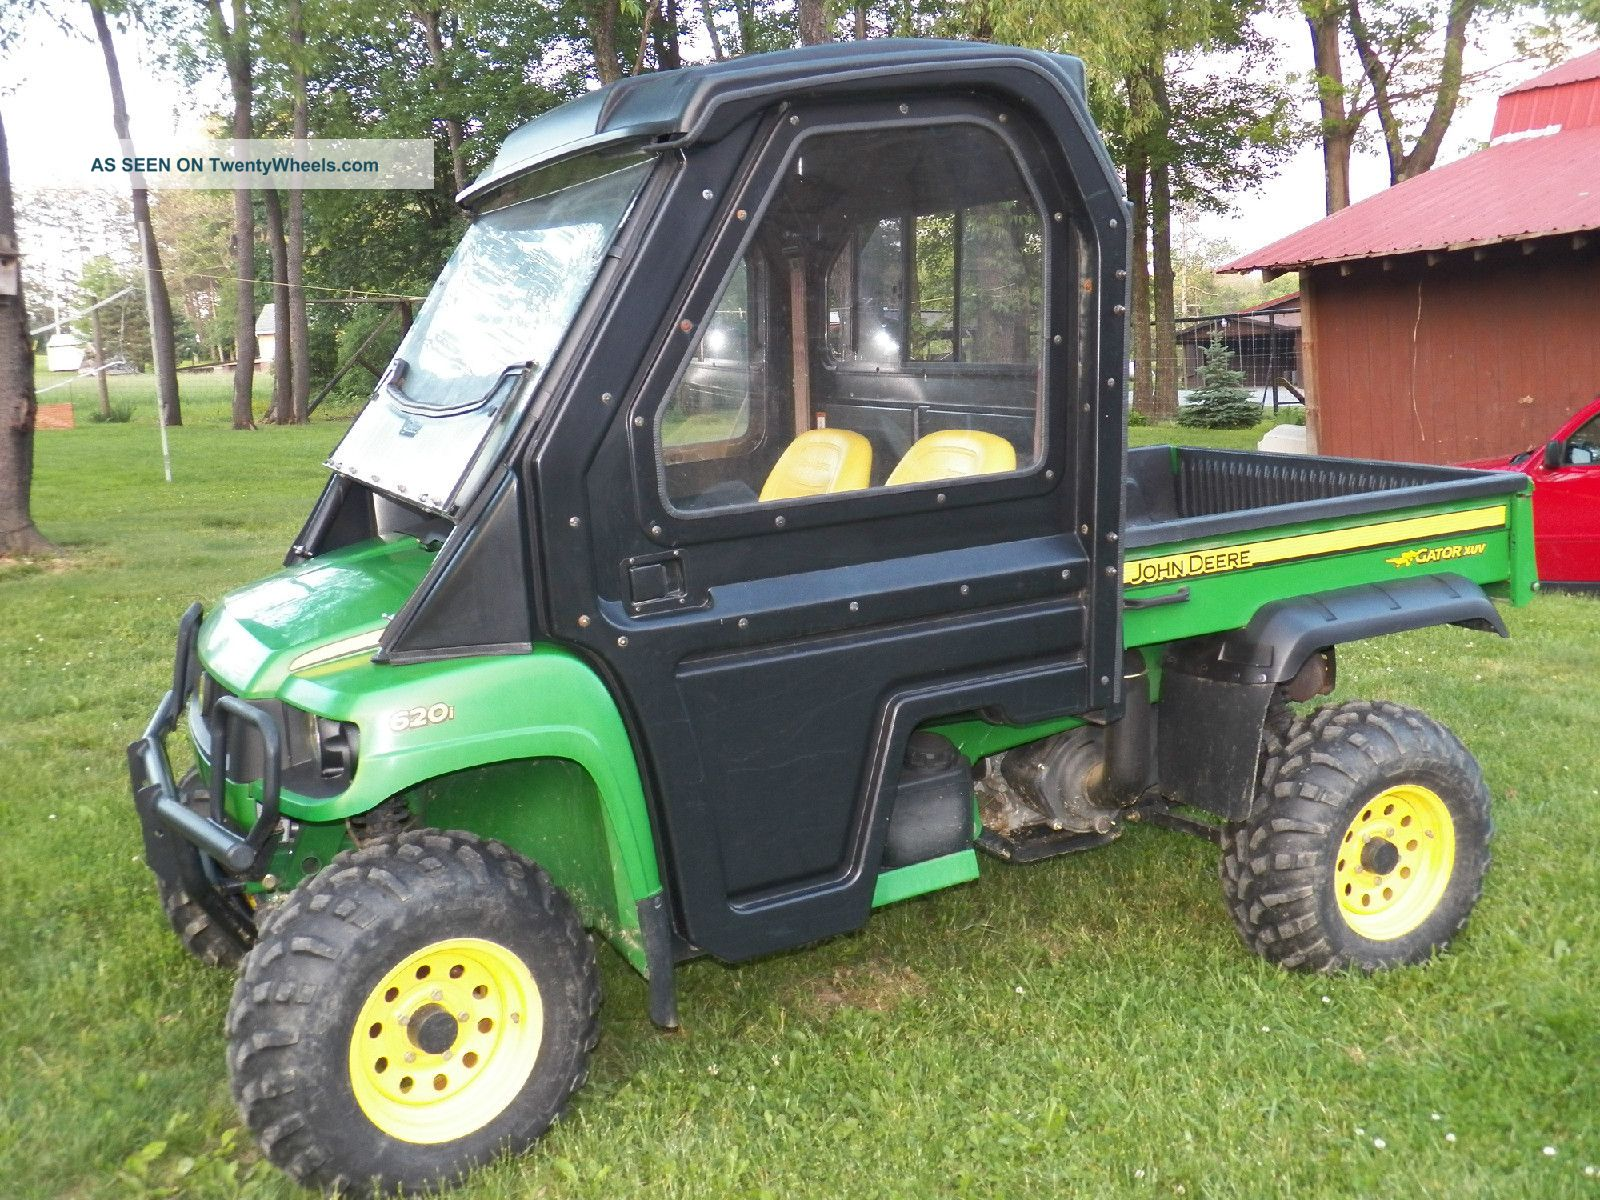 John Deere Xuv 620i Gator Utility Vehicle High Performance Kawasaki Engine Utility Vehicles photo